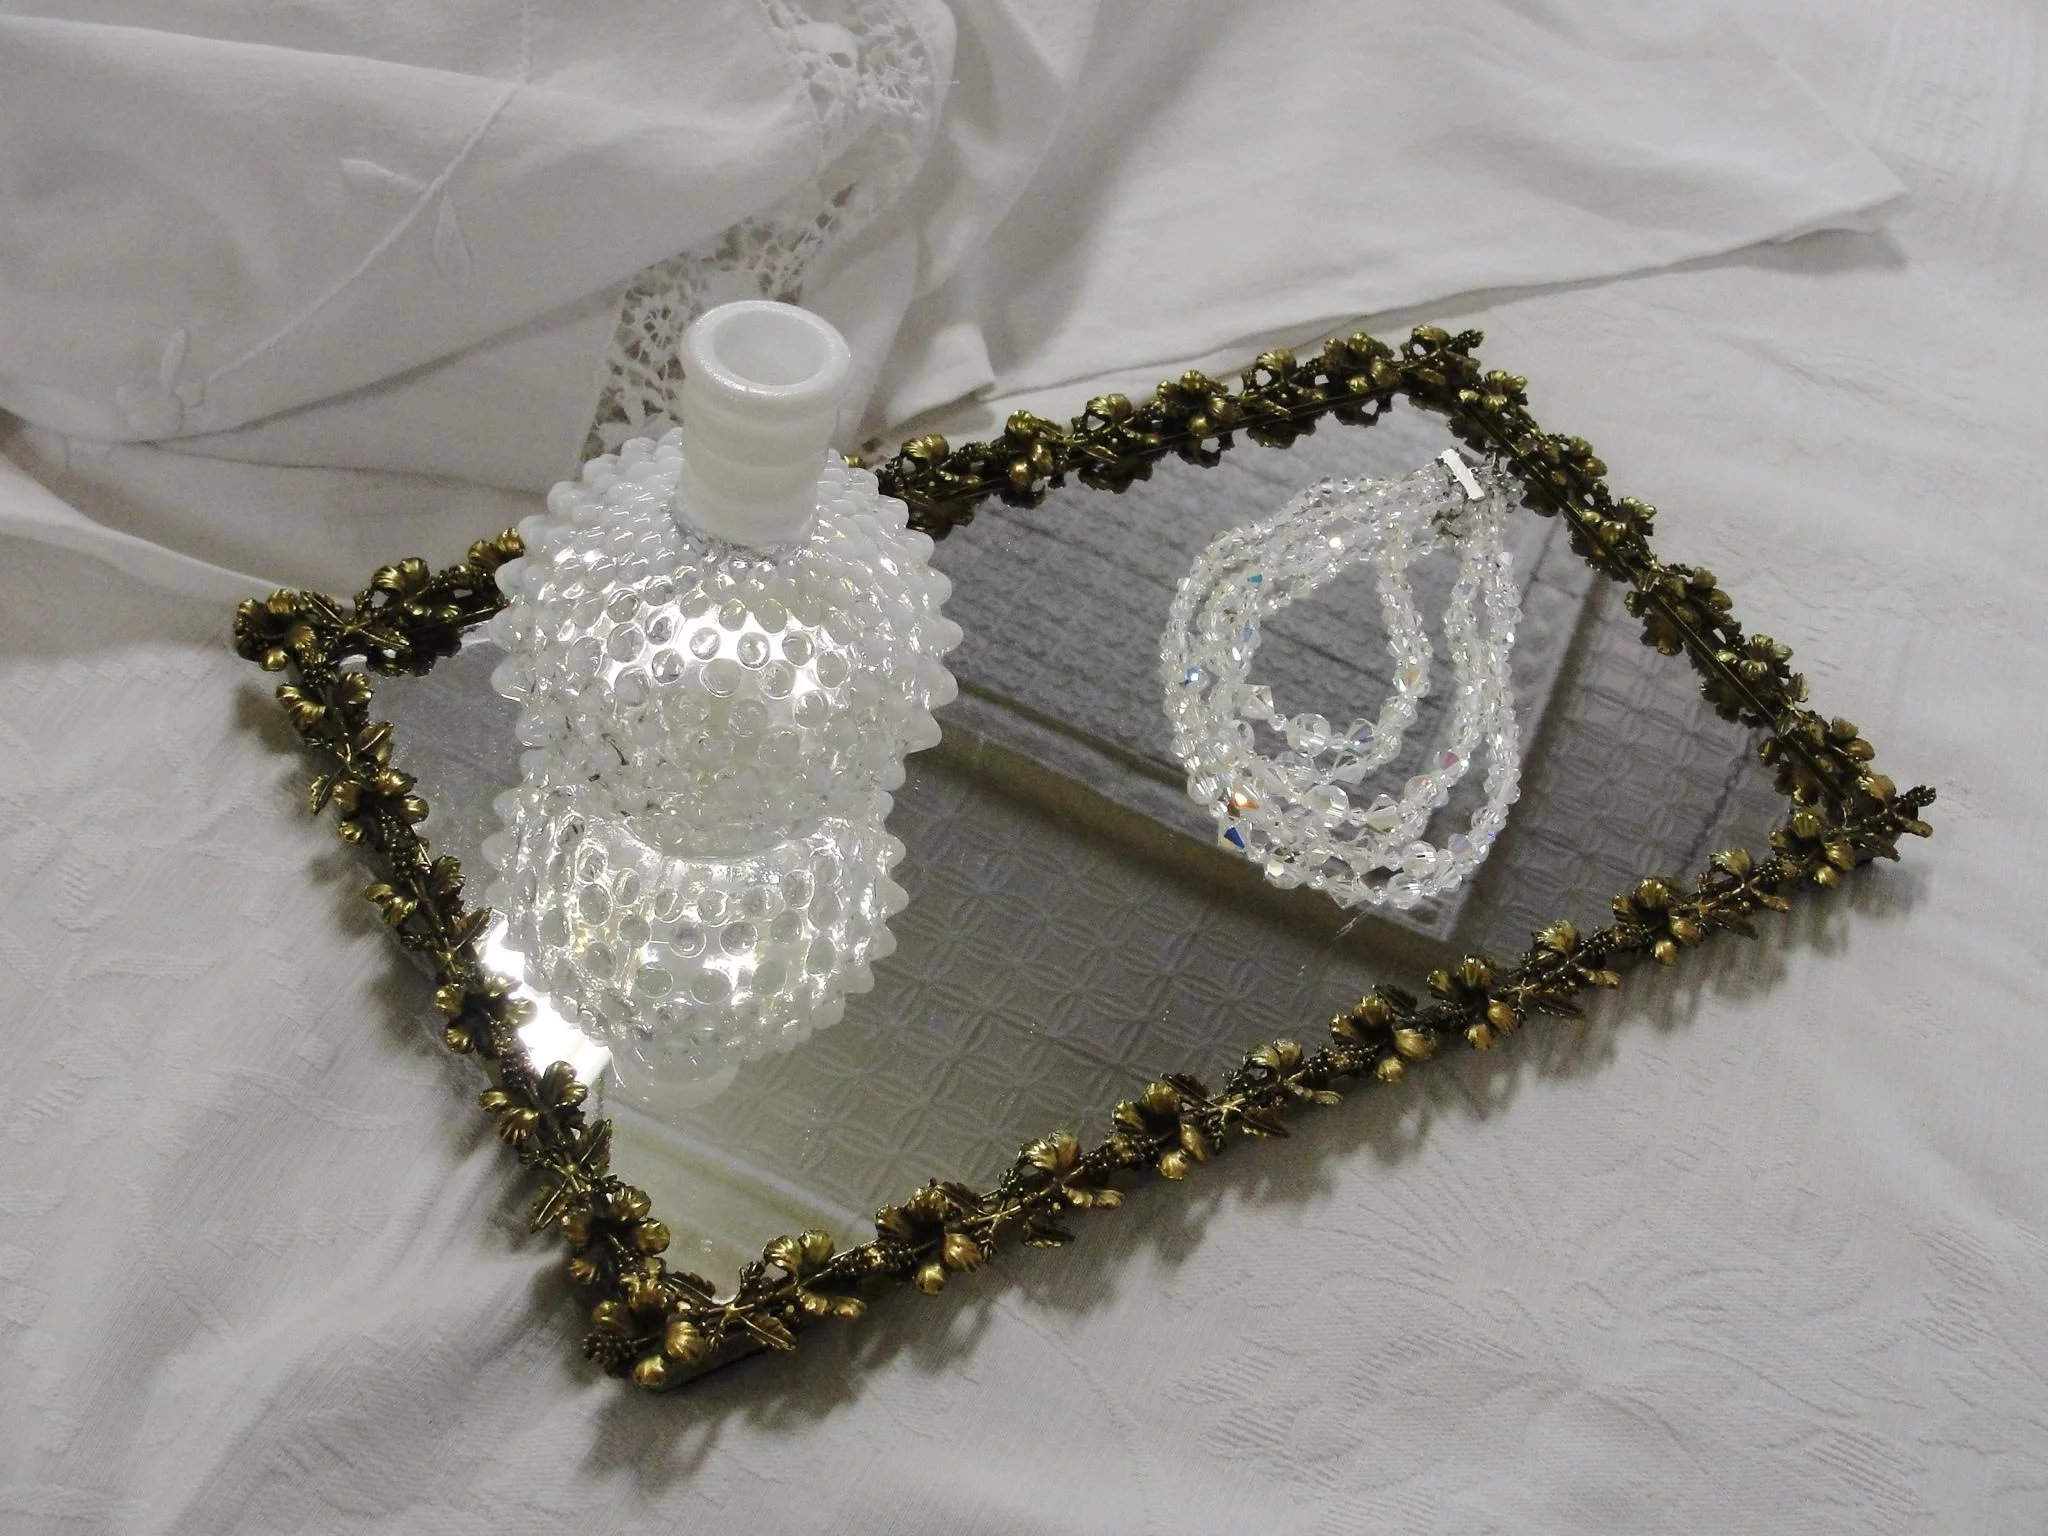 shannon crystal rectangular waterford vanity godinger cut tray serving s in sets new or box what